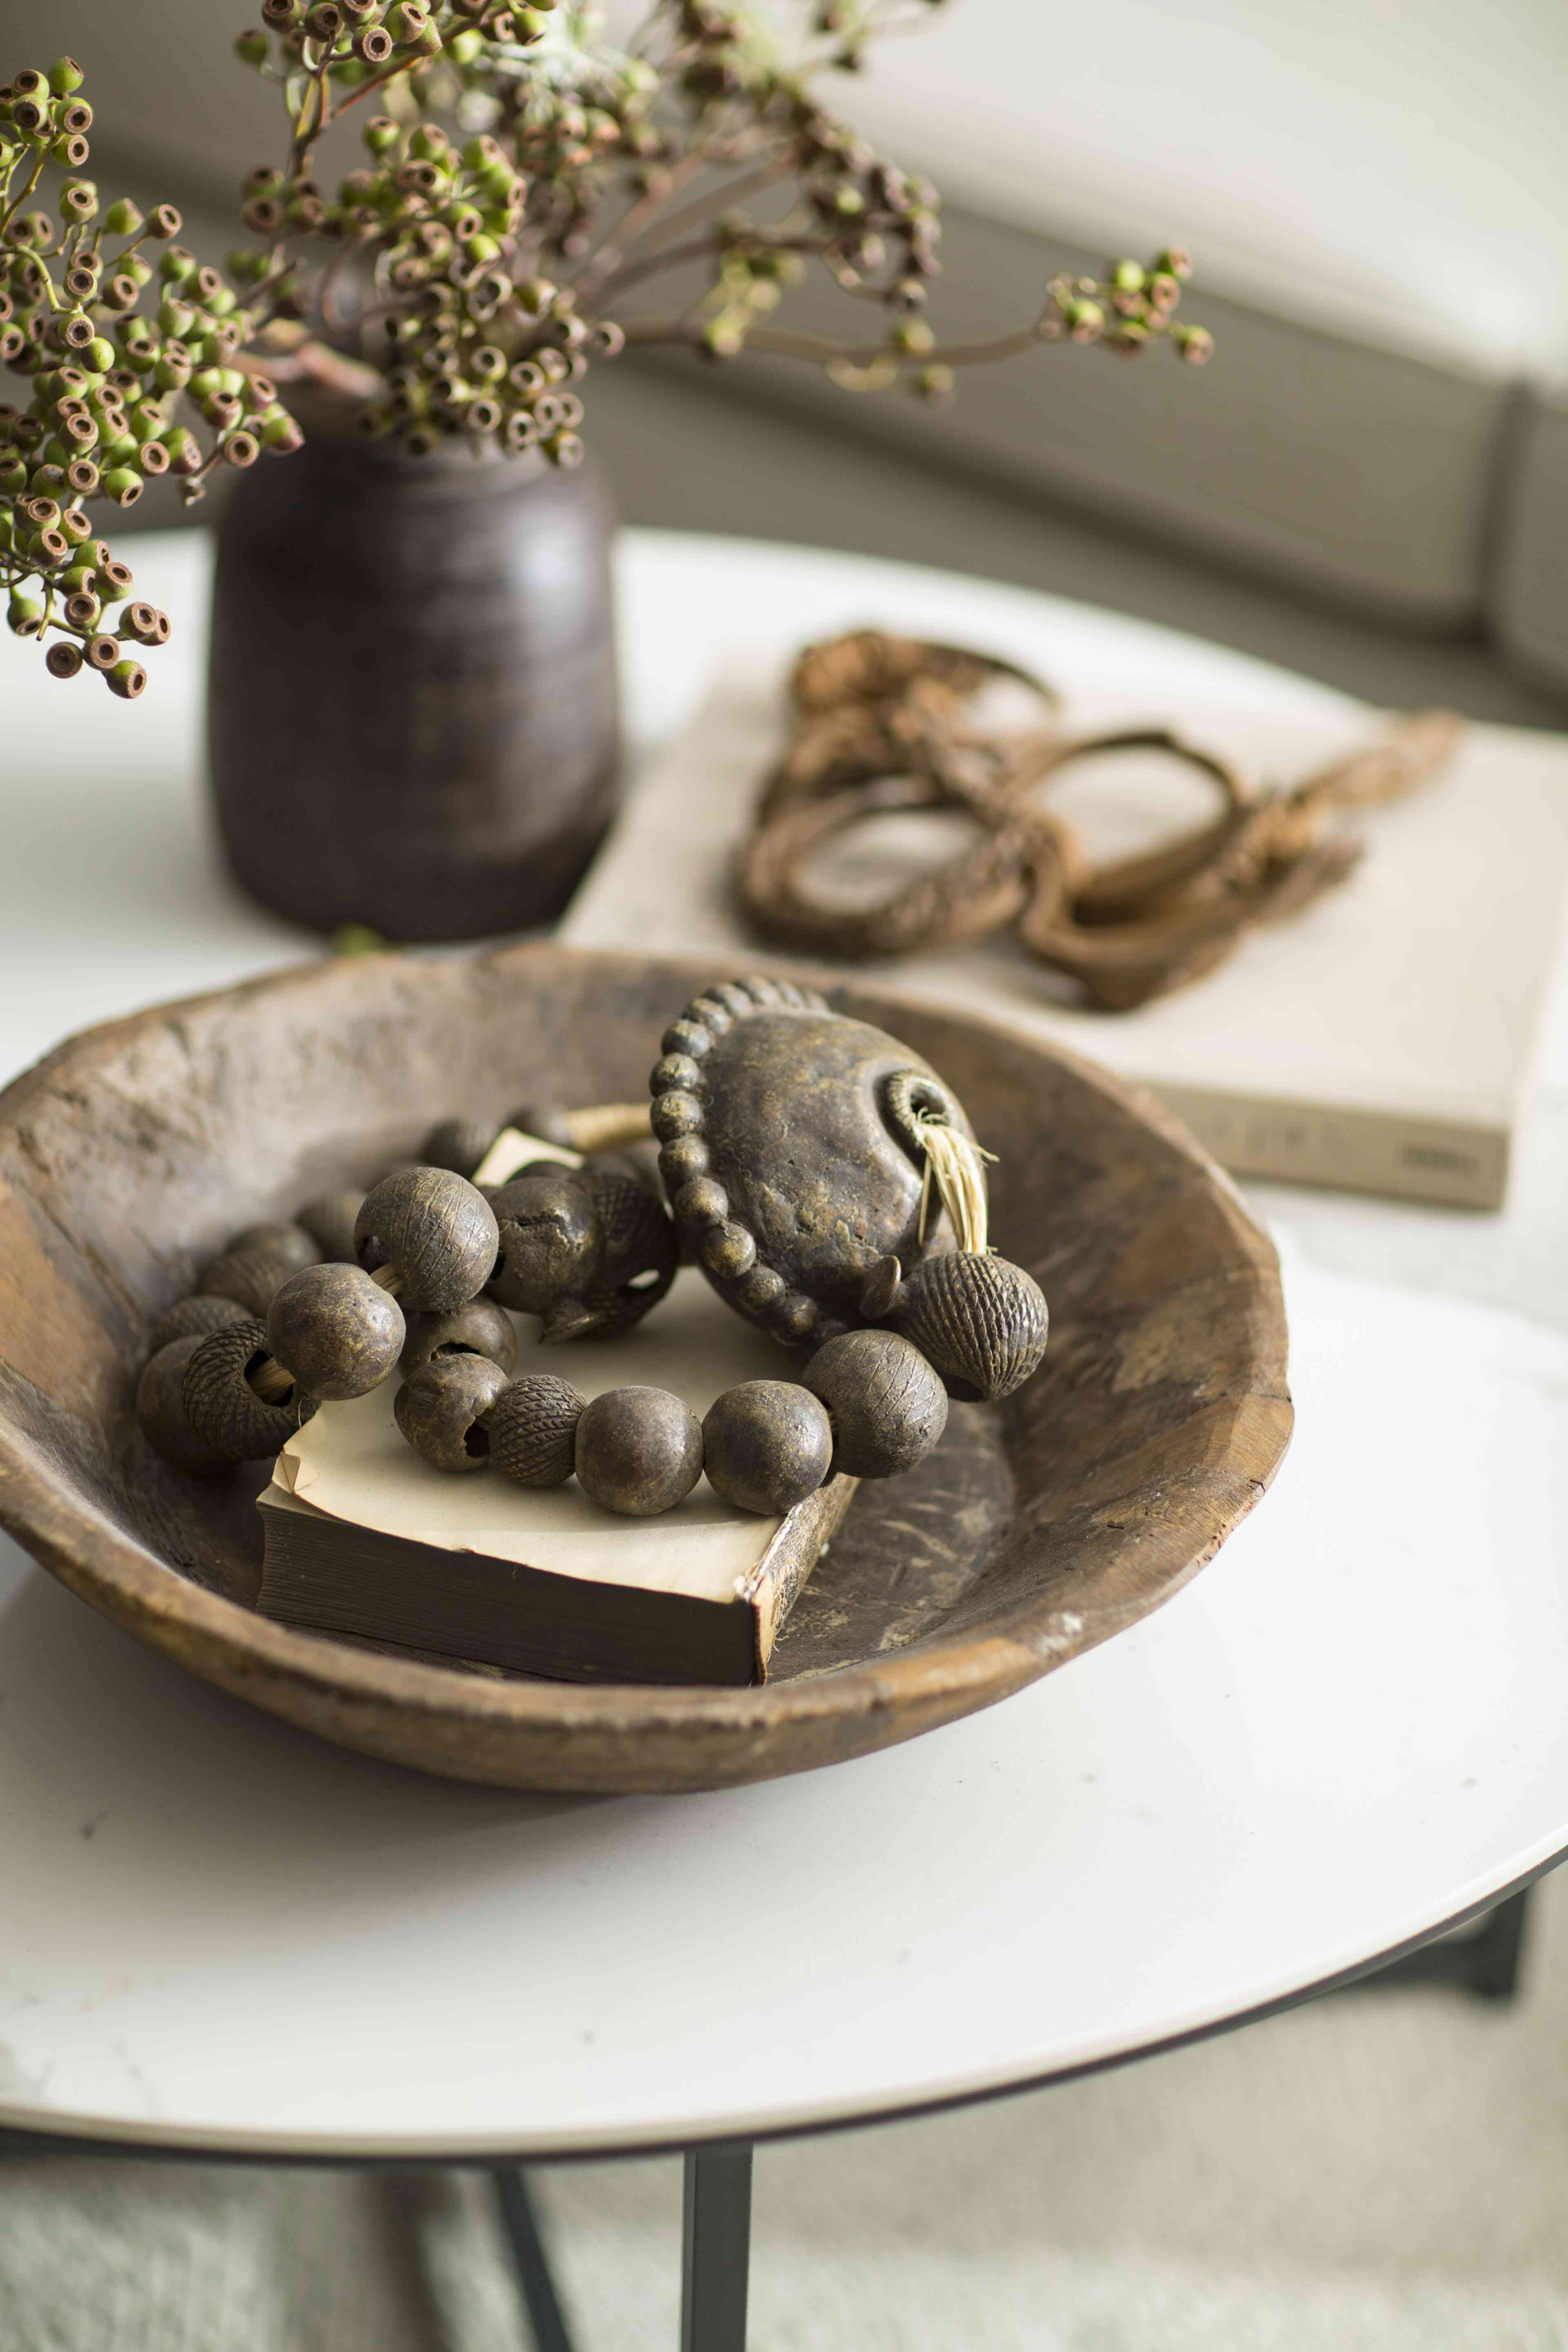 Objects in bowl